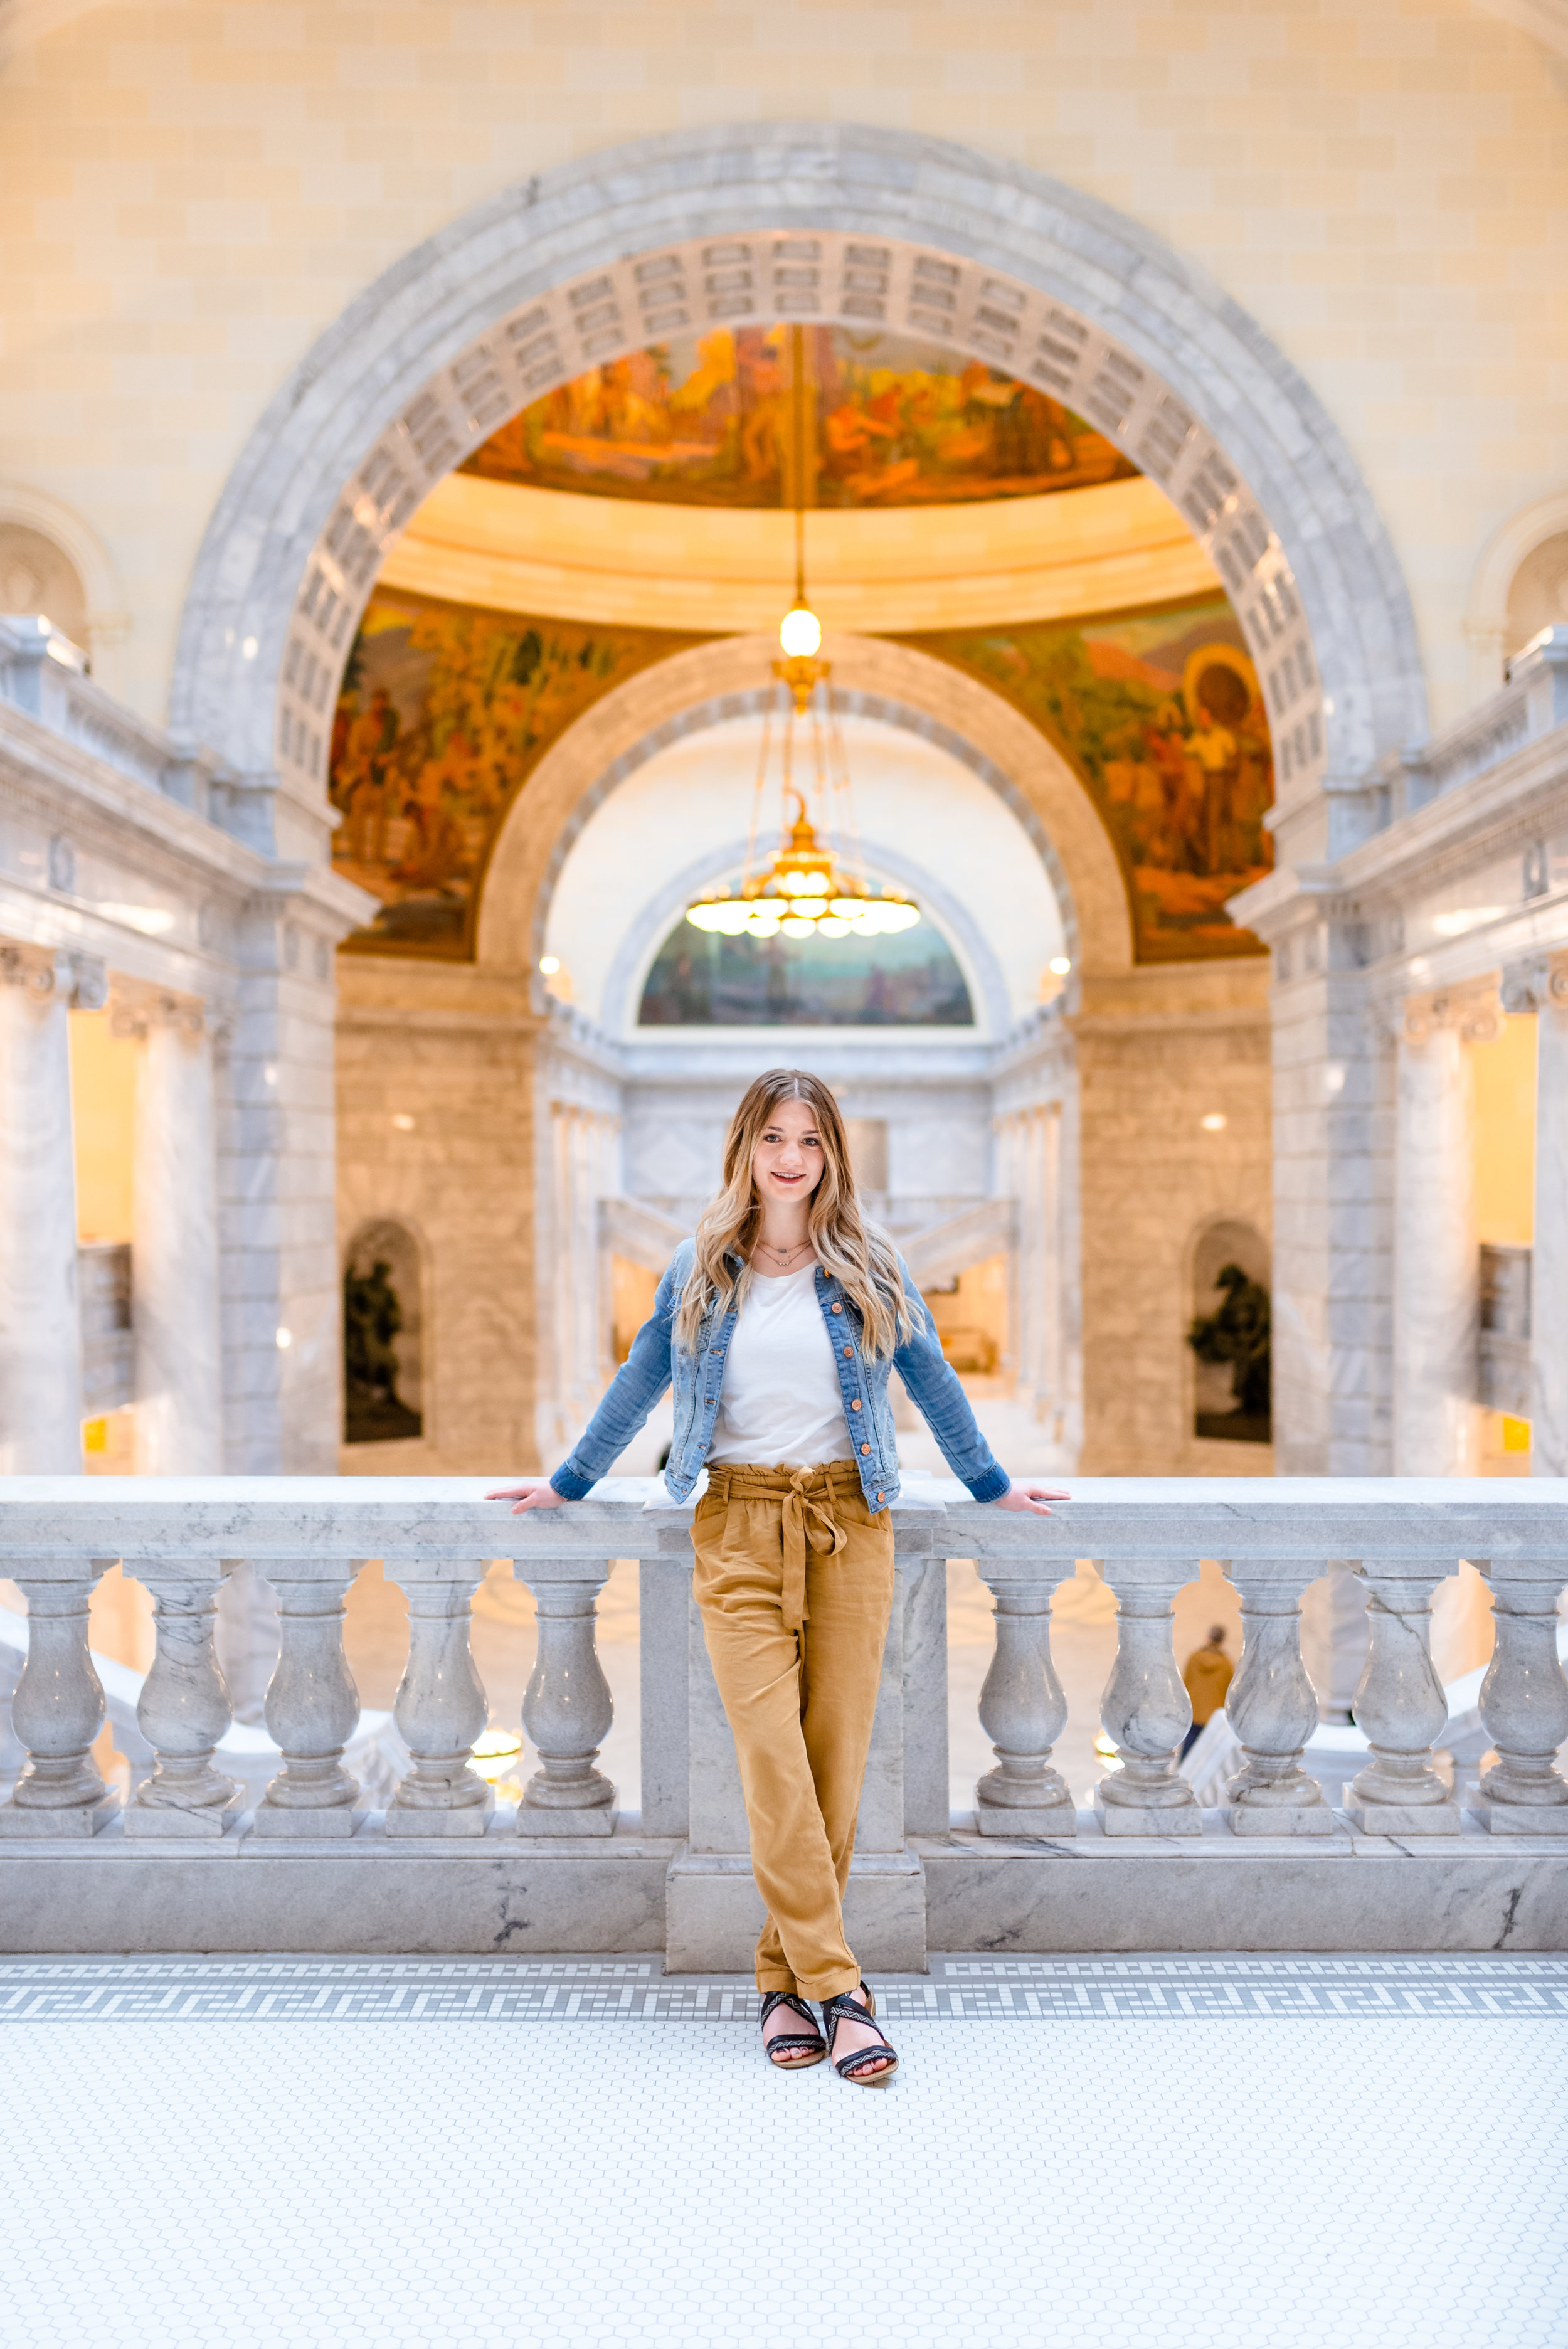 Rainy Day Senior portrait session done at Utah State Capitol Building in Salt Lake City, UT.